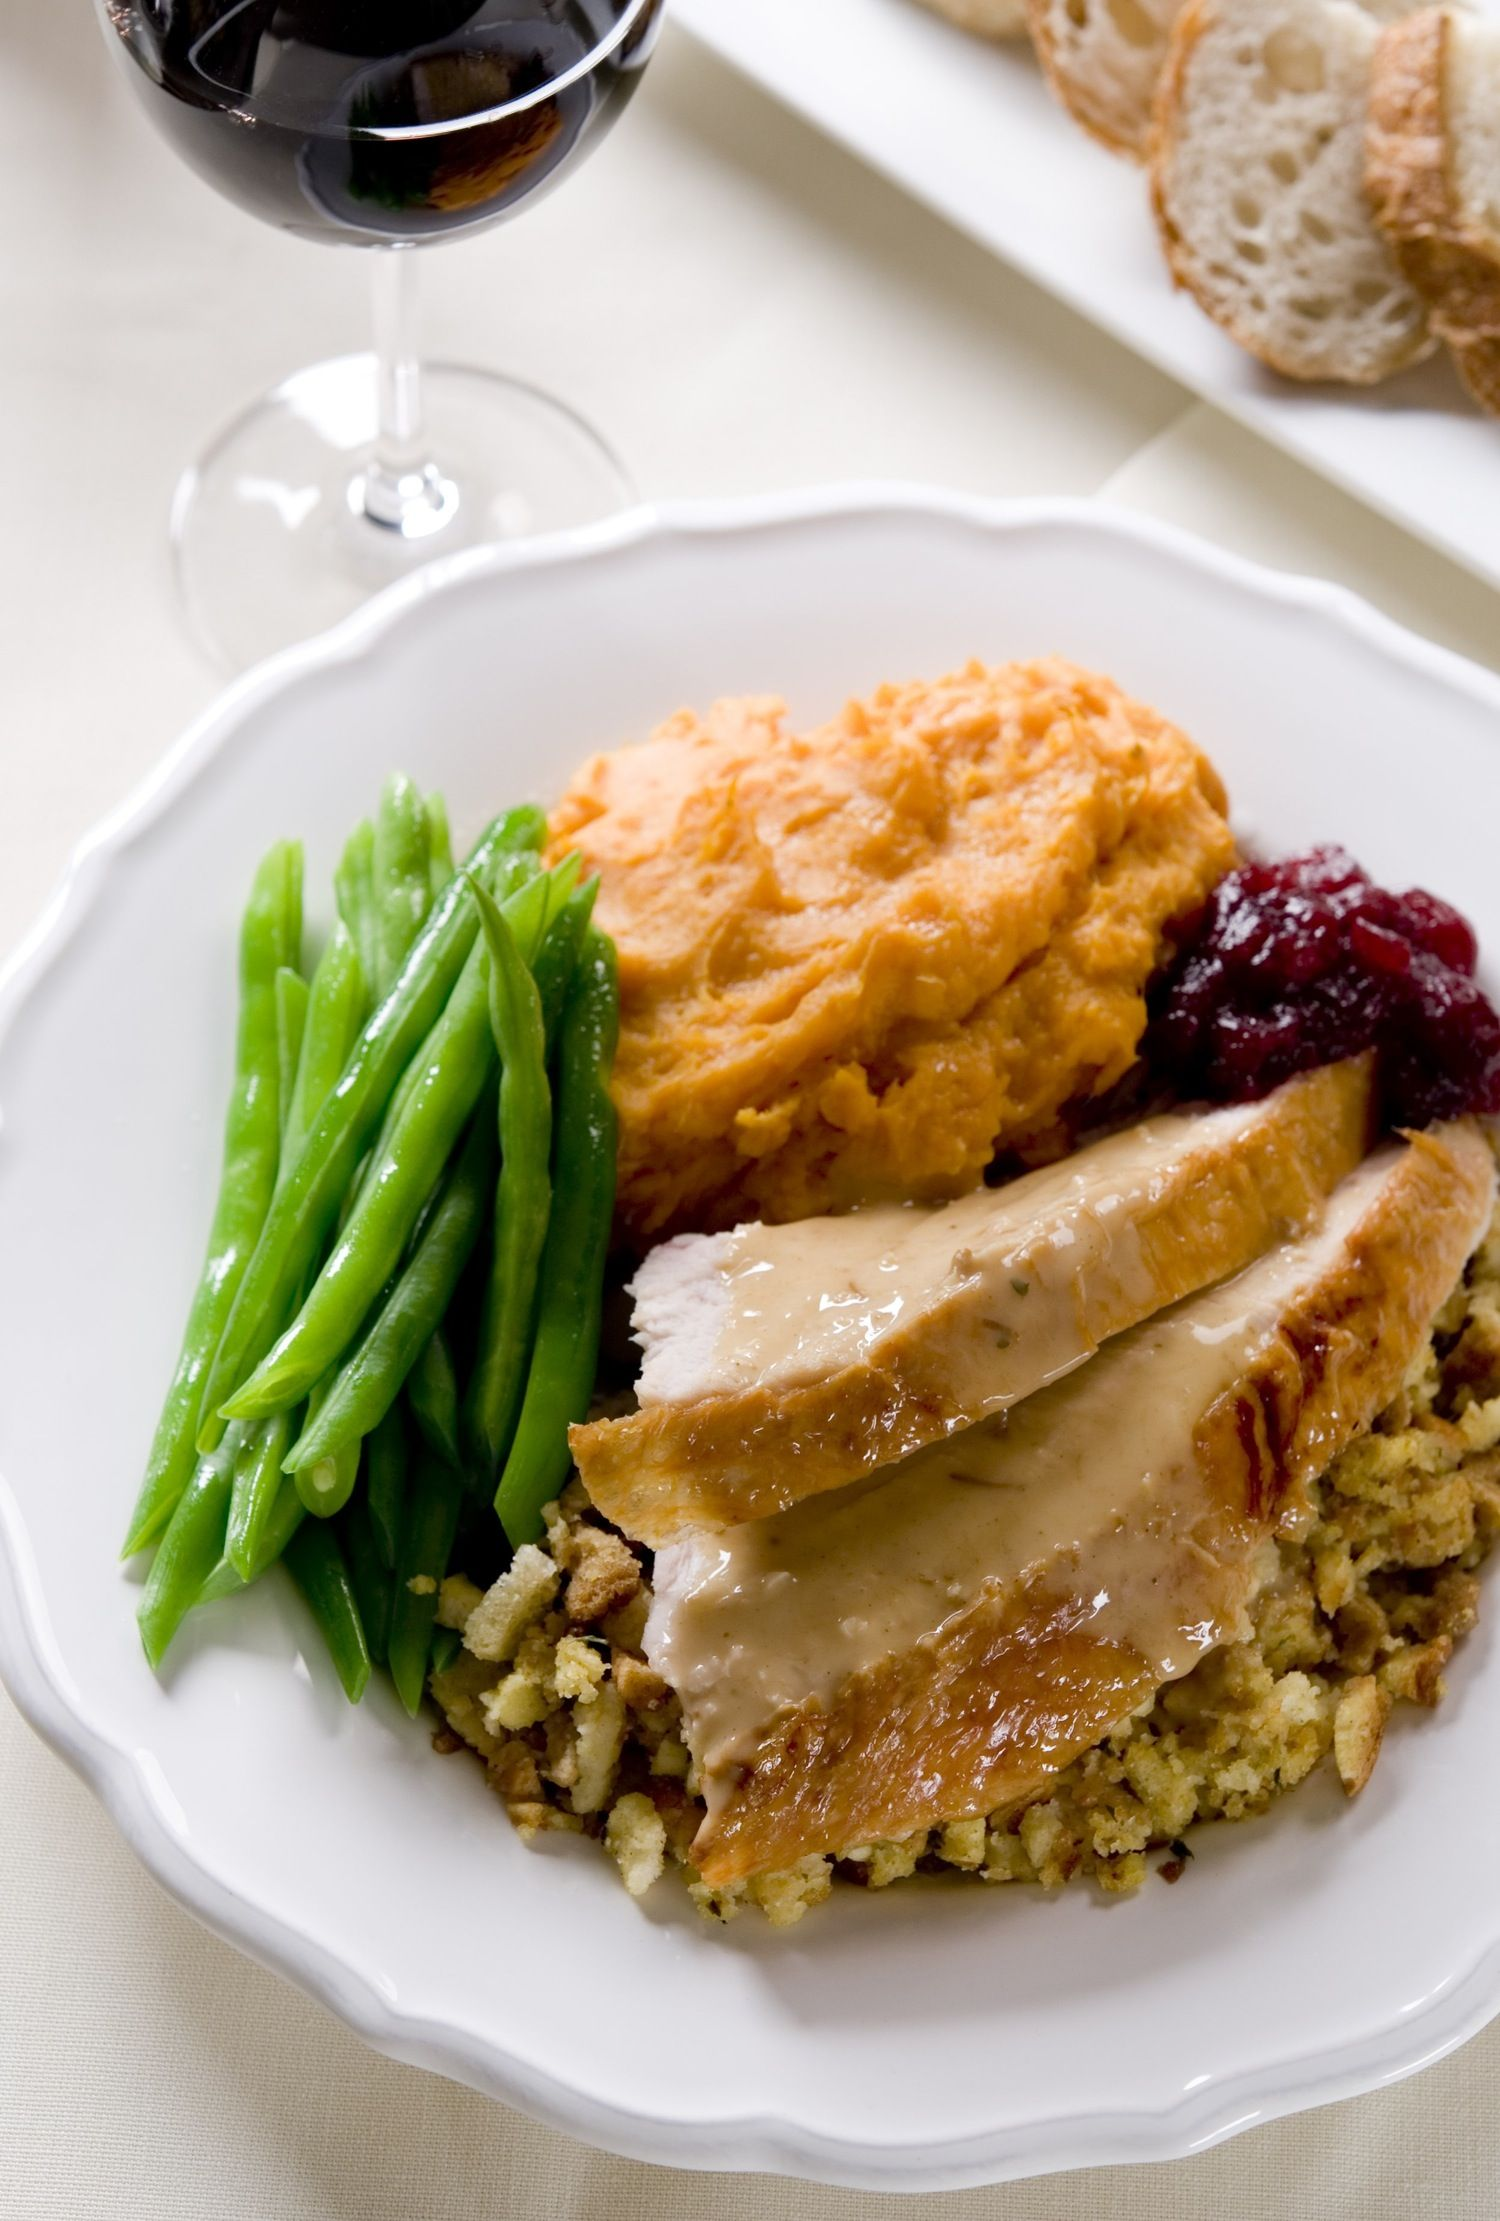 Thanksgiving Leftovers You Should & Shouldn t Freeze